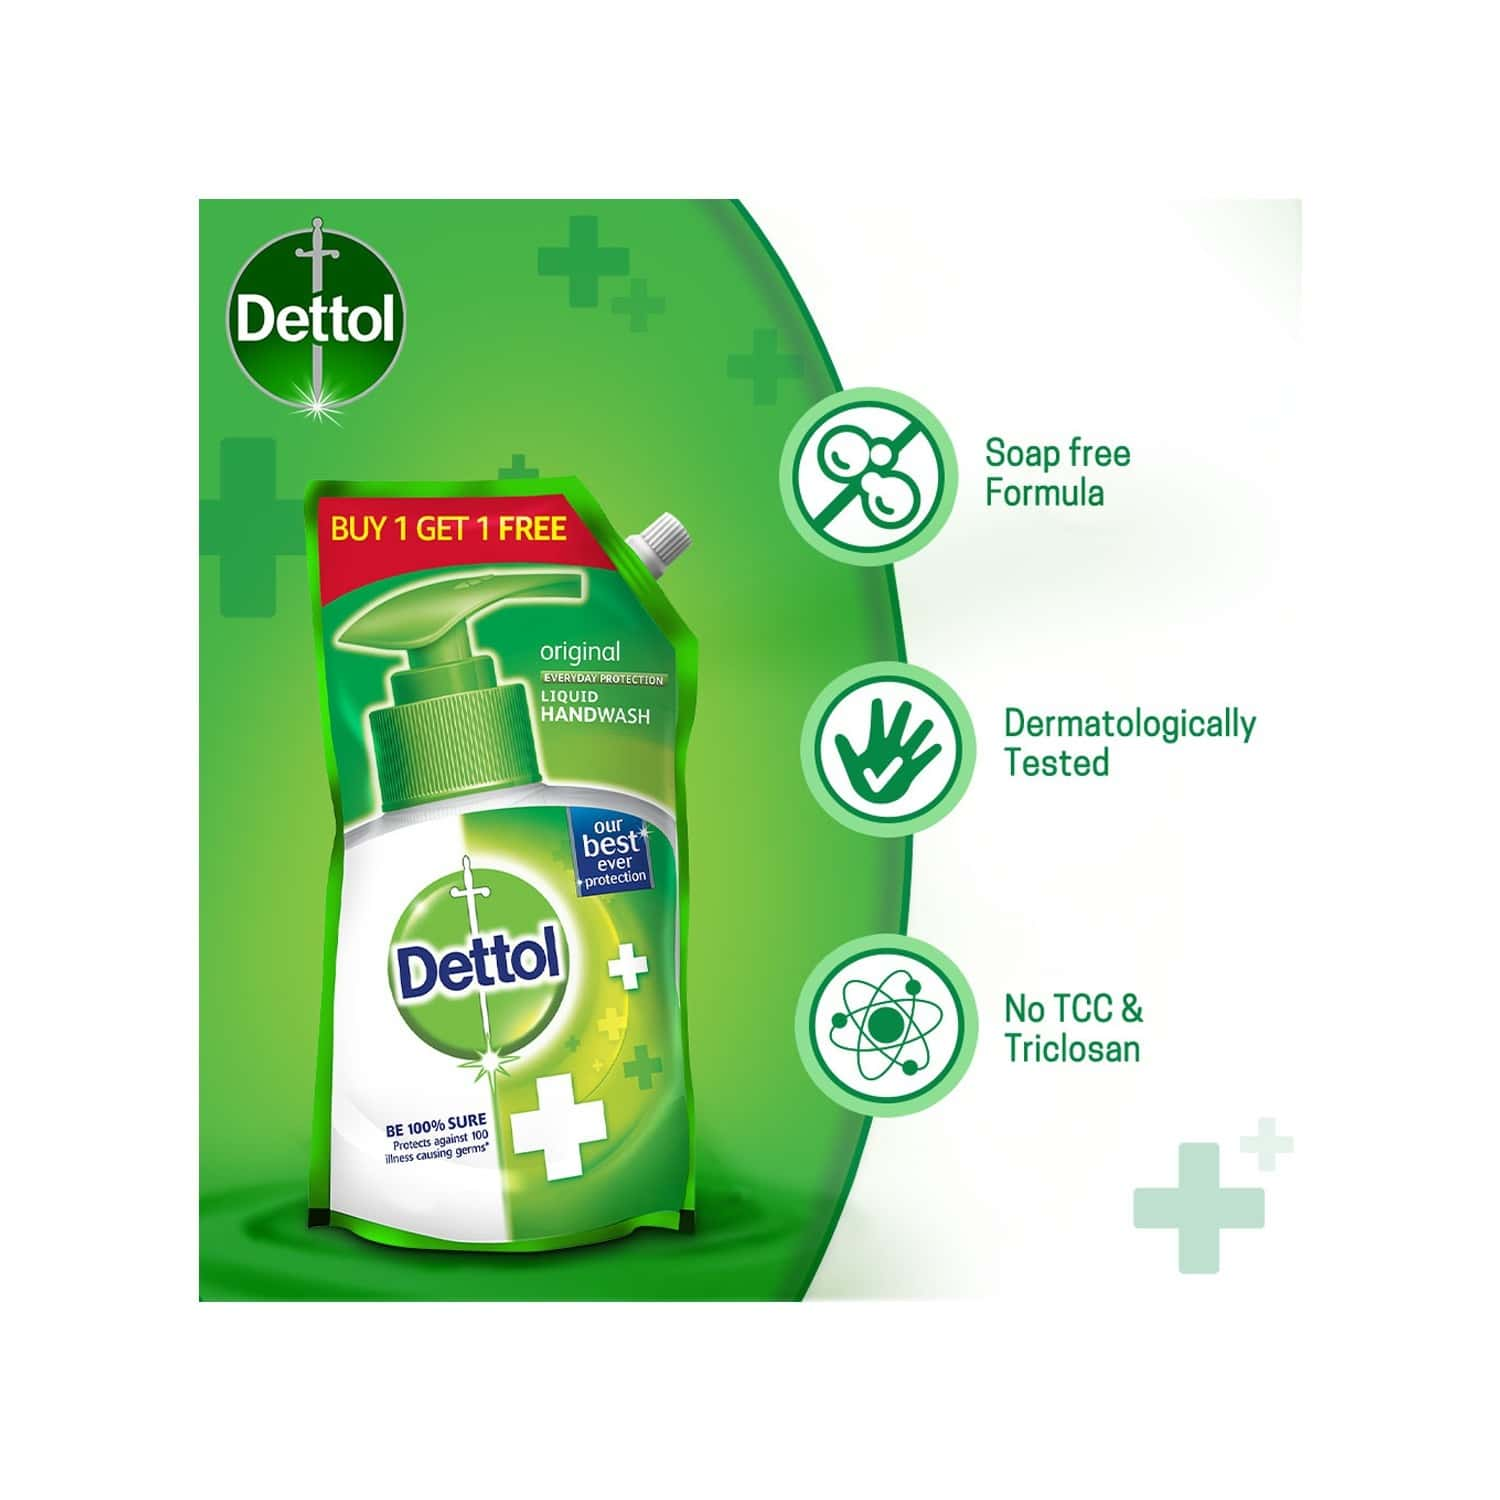 Dettol Original Handwash Liquid Soap Refill, 750 Ml, Buy 1 Get 1 Free